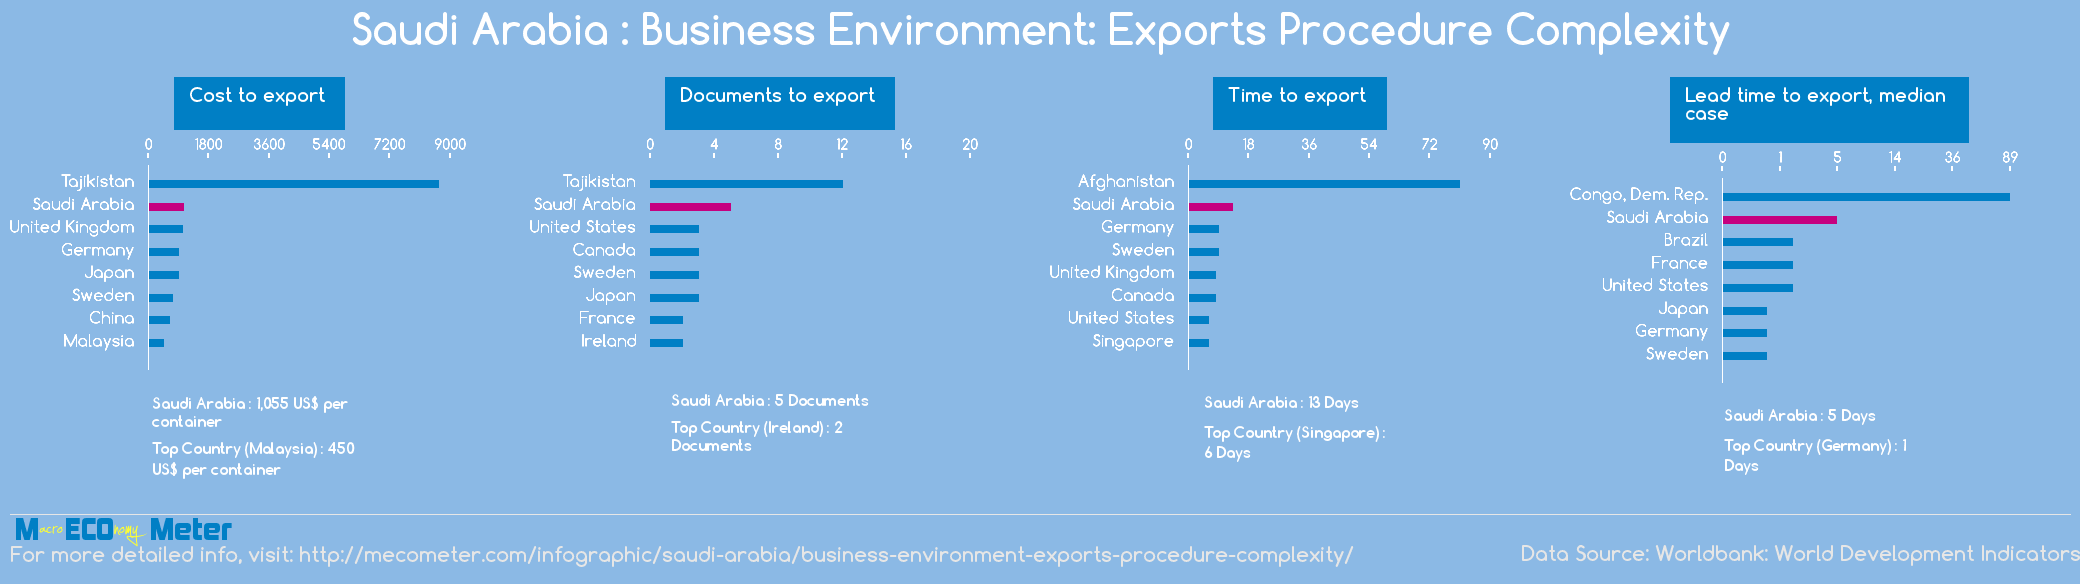 Saudi Arabia : Business Environment: Exports Procedure Complexity